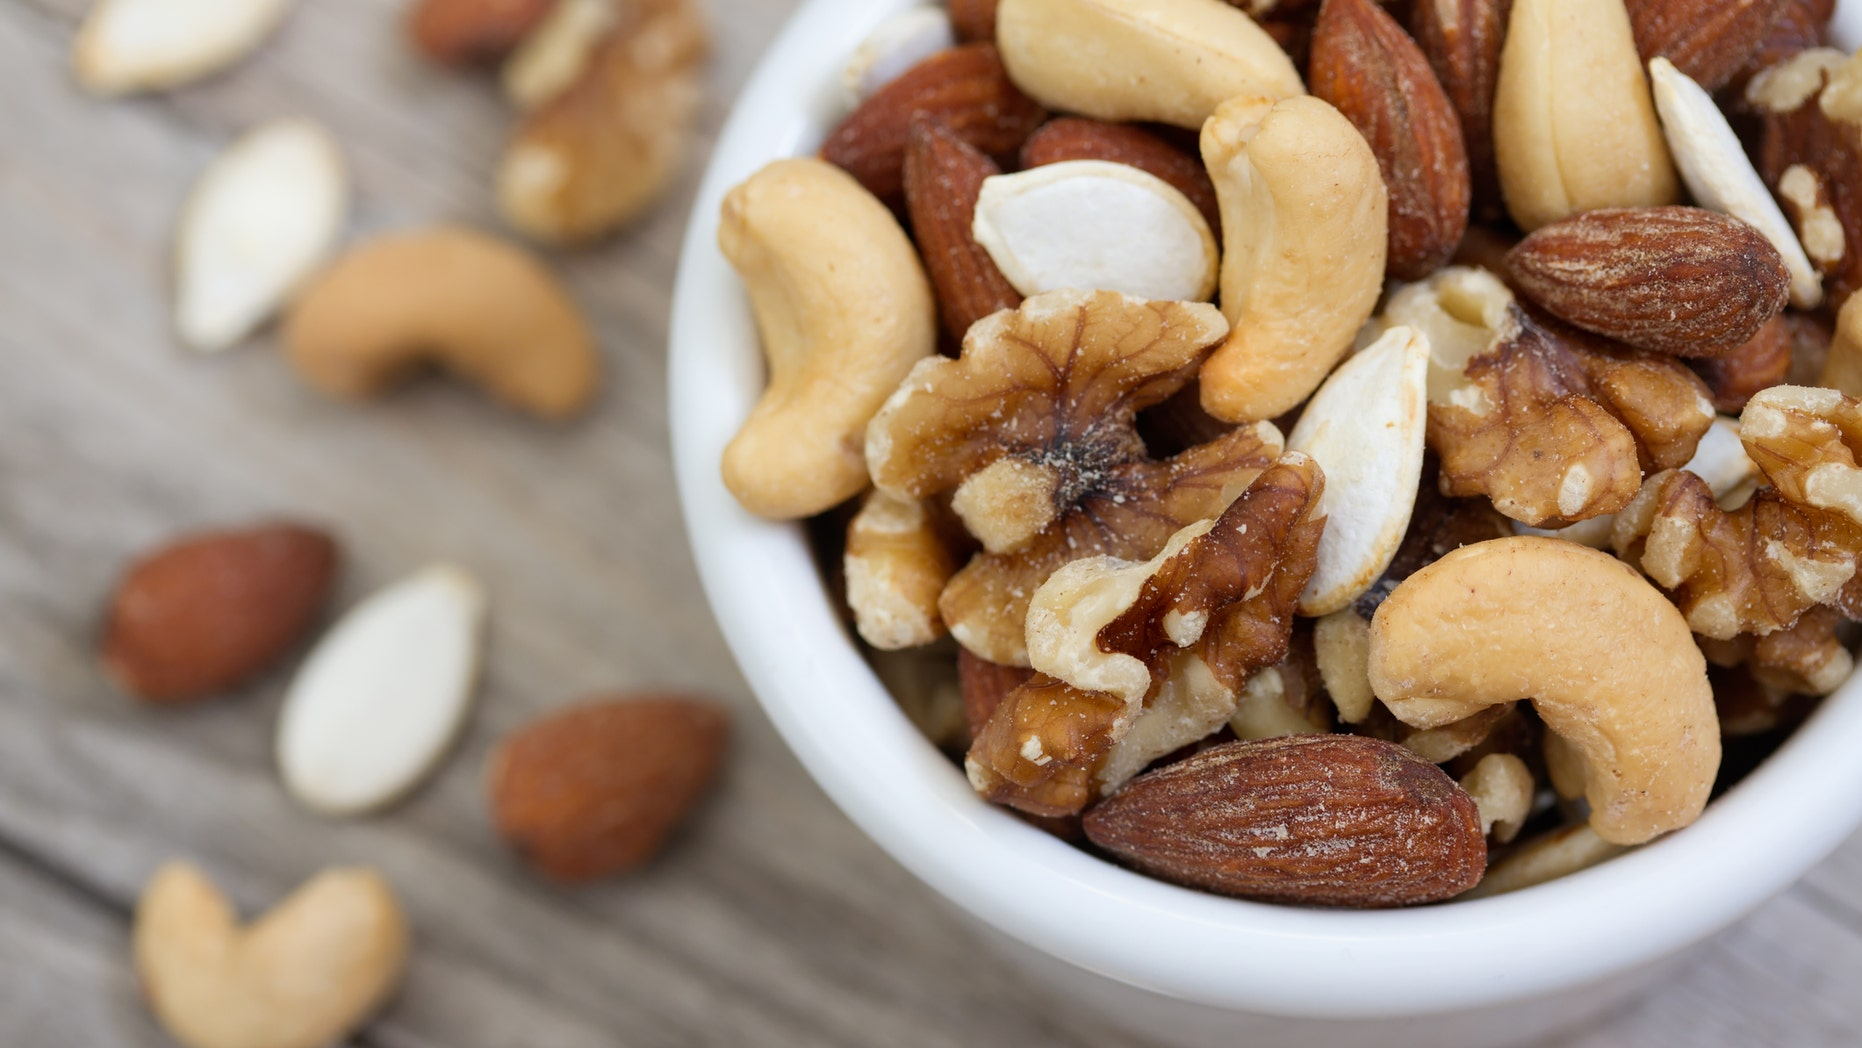 Bowl of mixed nuts on rustic wooden table in natural light.